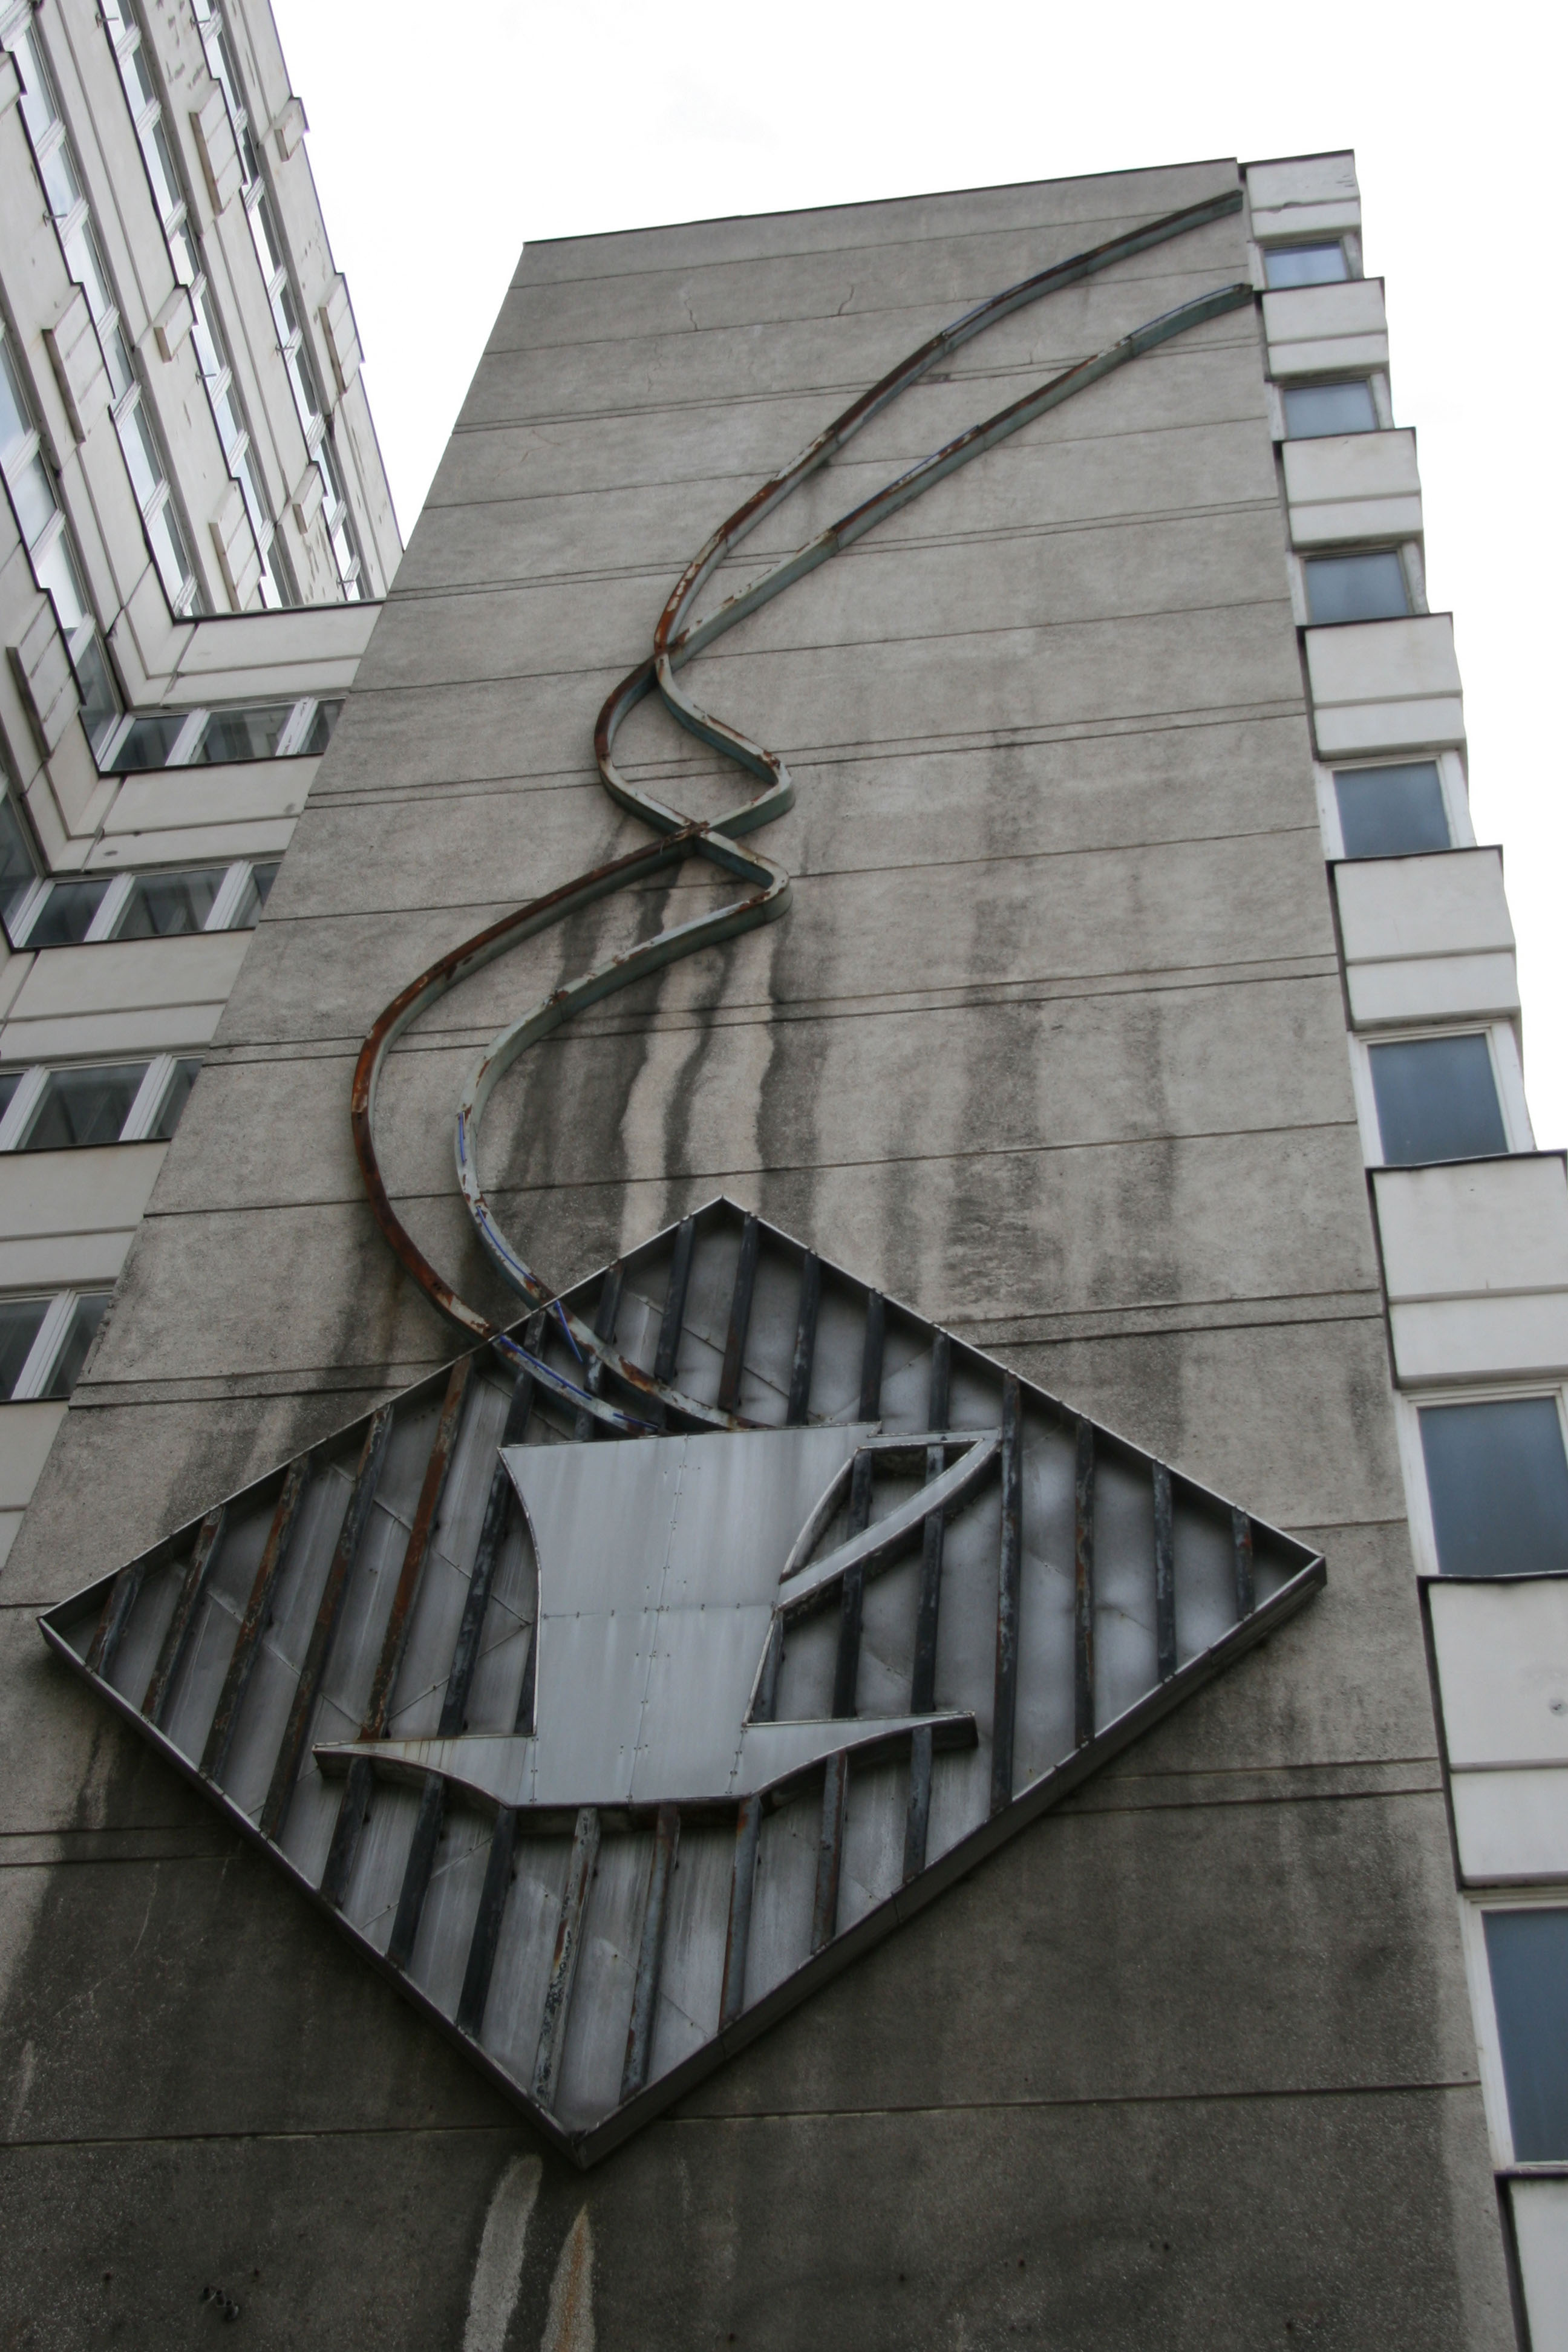 A giant Coffee Cup sign on the side of a DDR era building on Otto-Braun-Strasse in Berlin